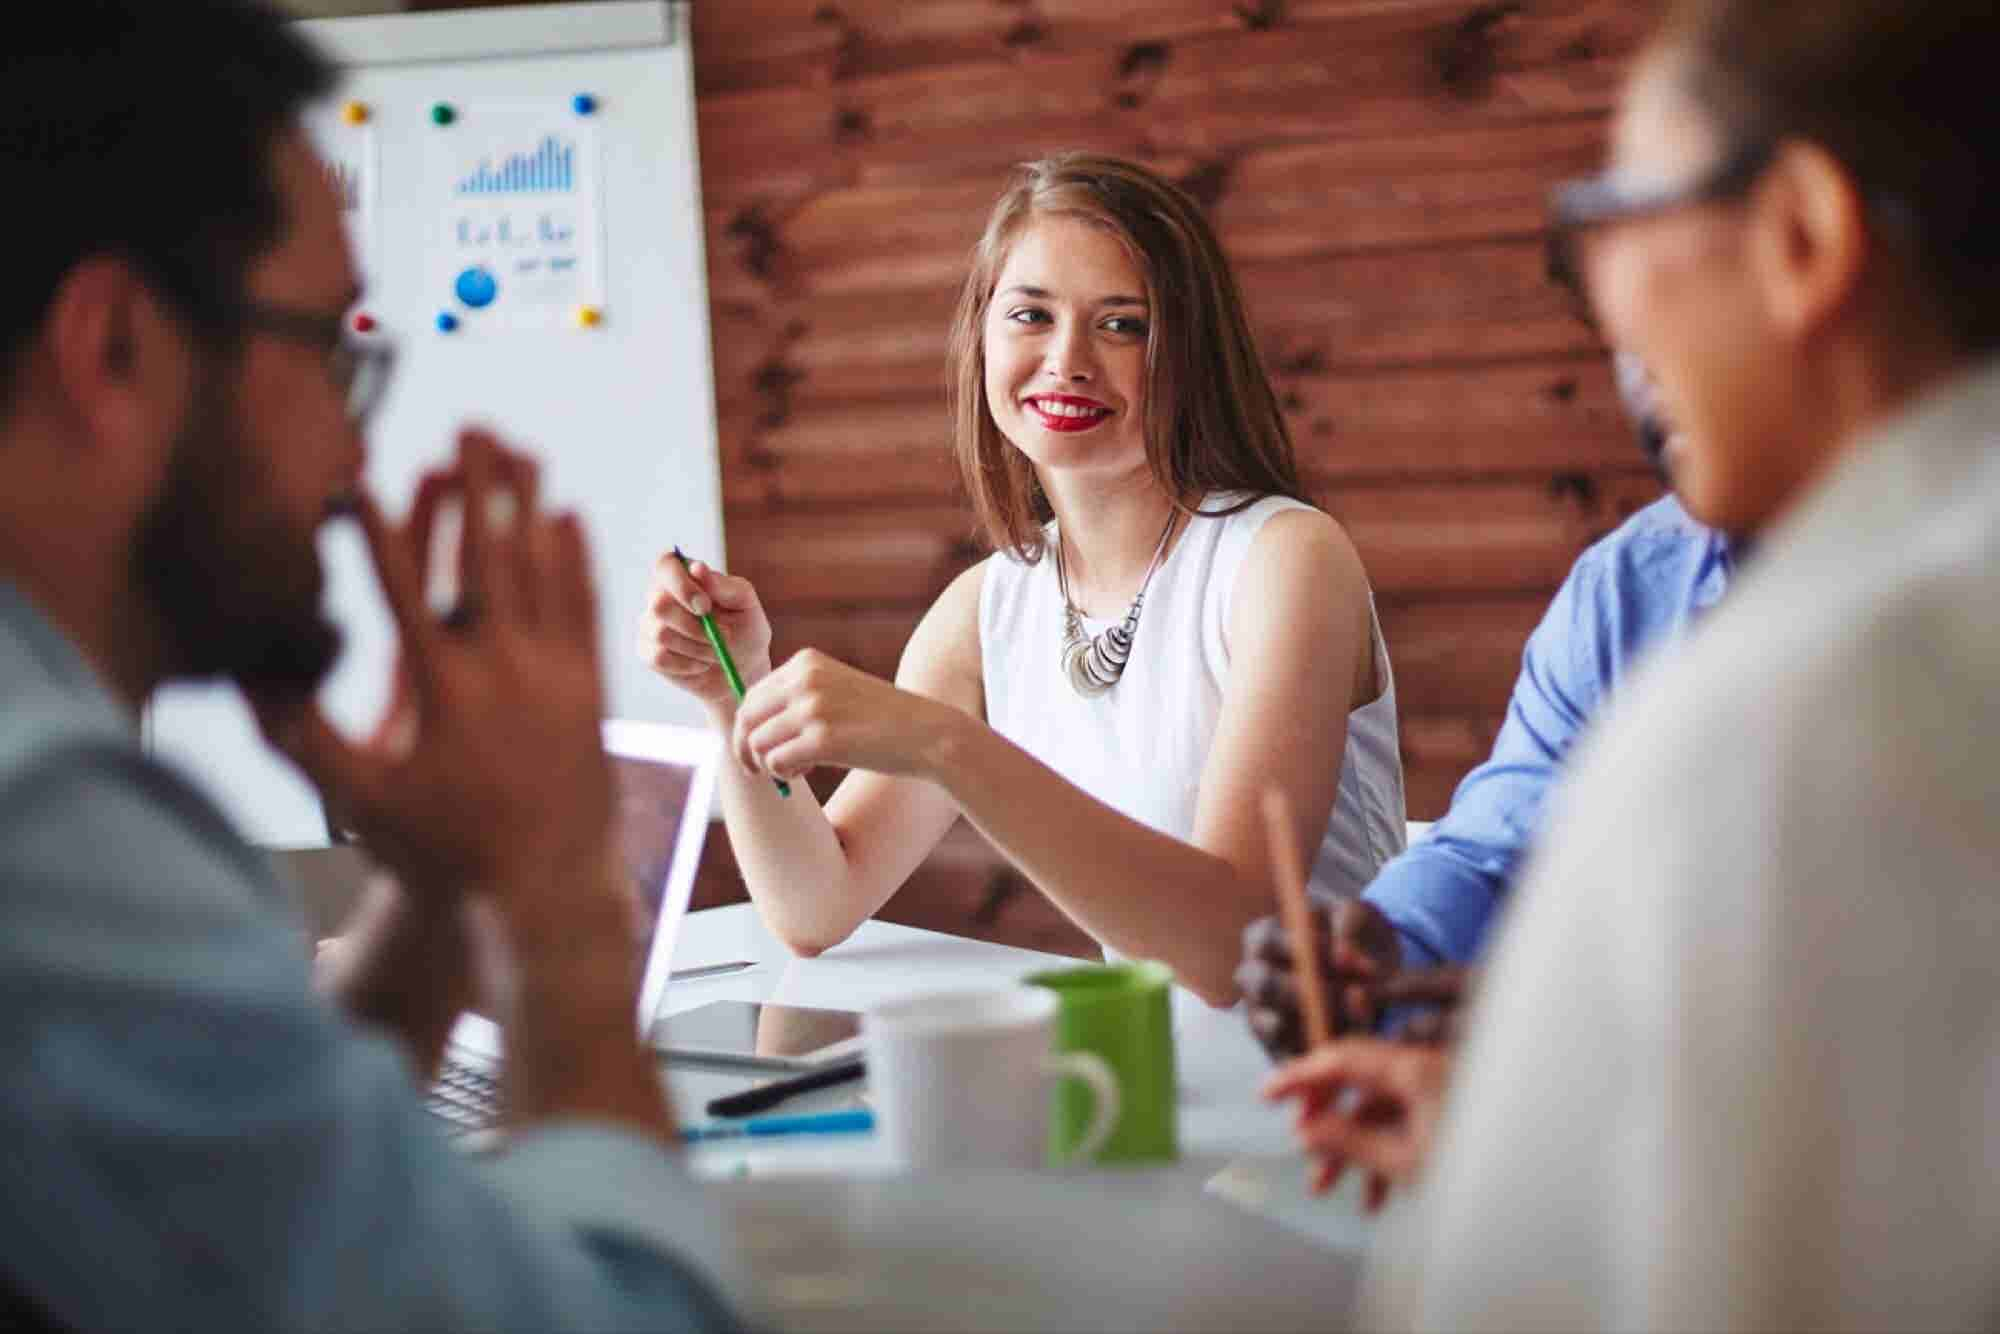 4 Ways to Contain HR Costs Without Impacting the Employee Experience